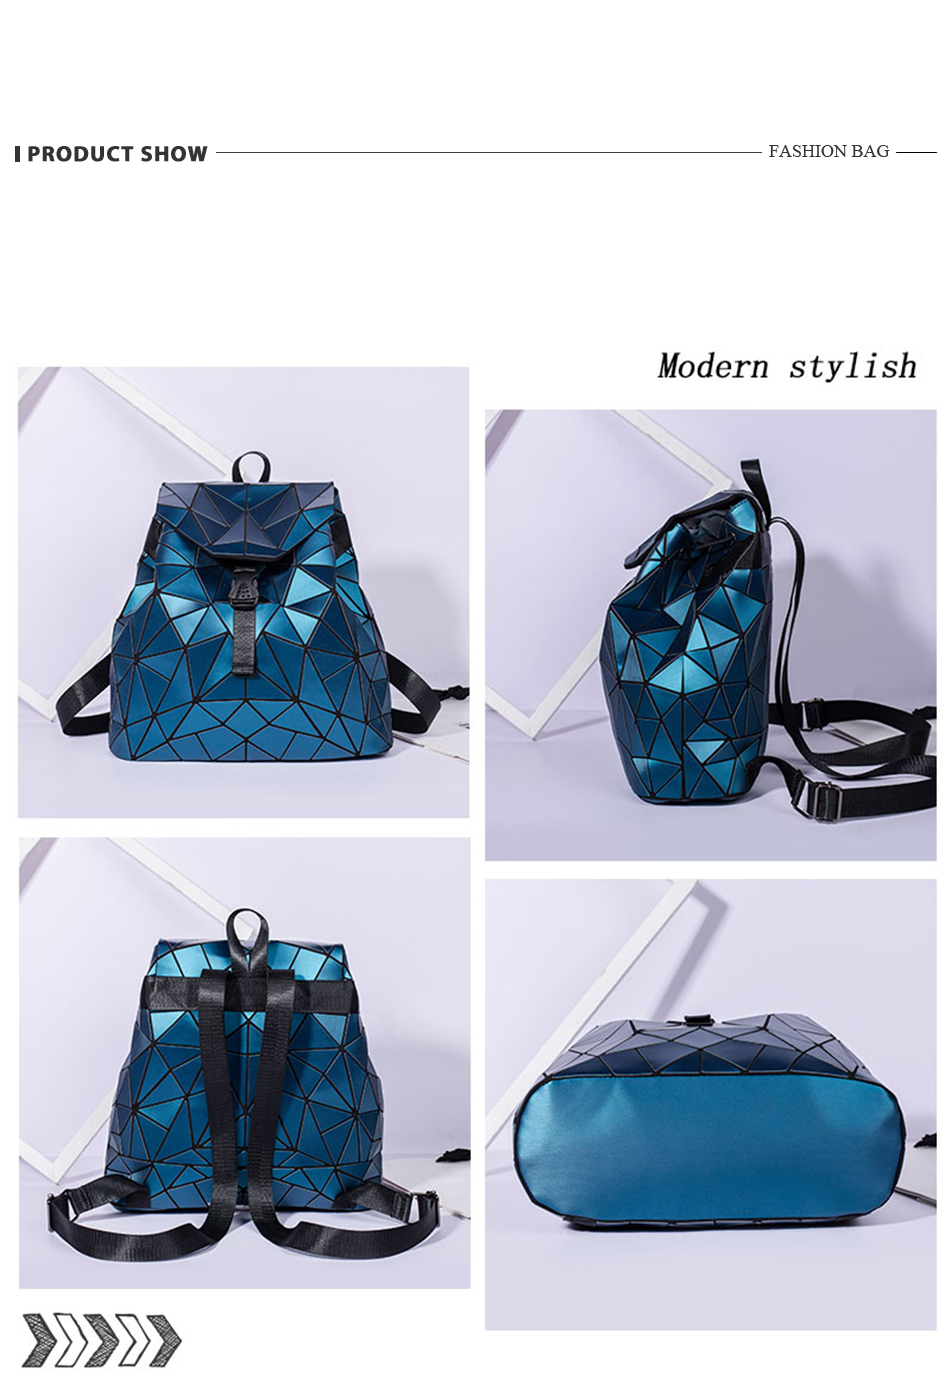 H95c4fb711bcd4f1697be9f1c797a5eb2R - Women backpack school bag large capacity foldable geometric